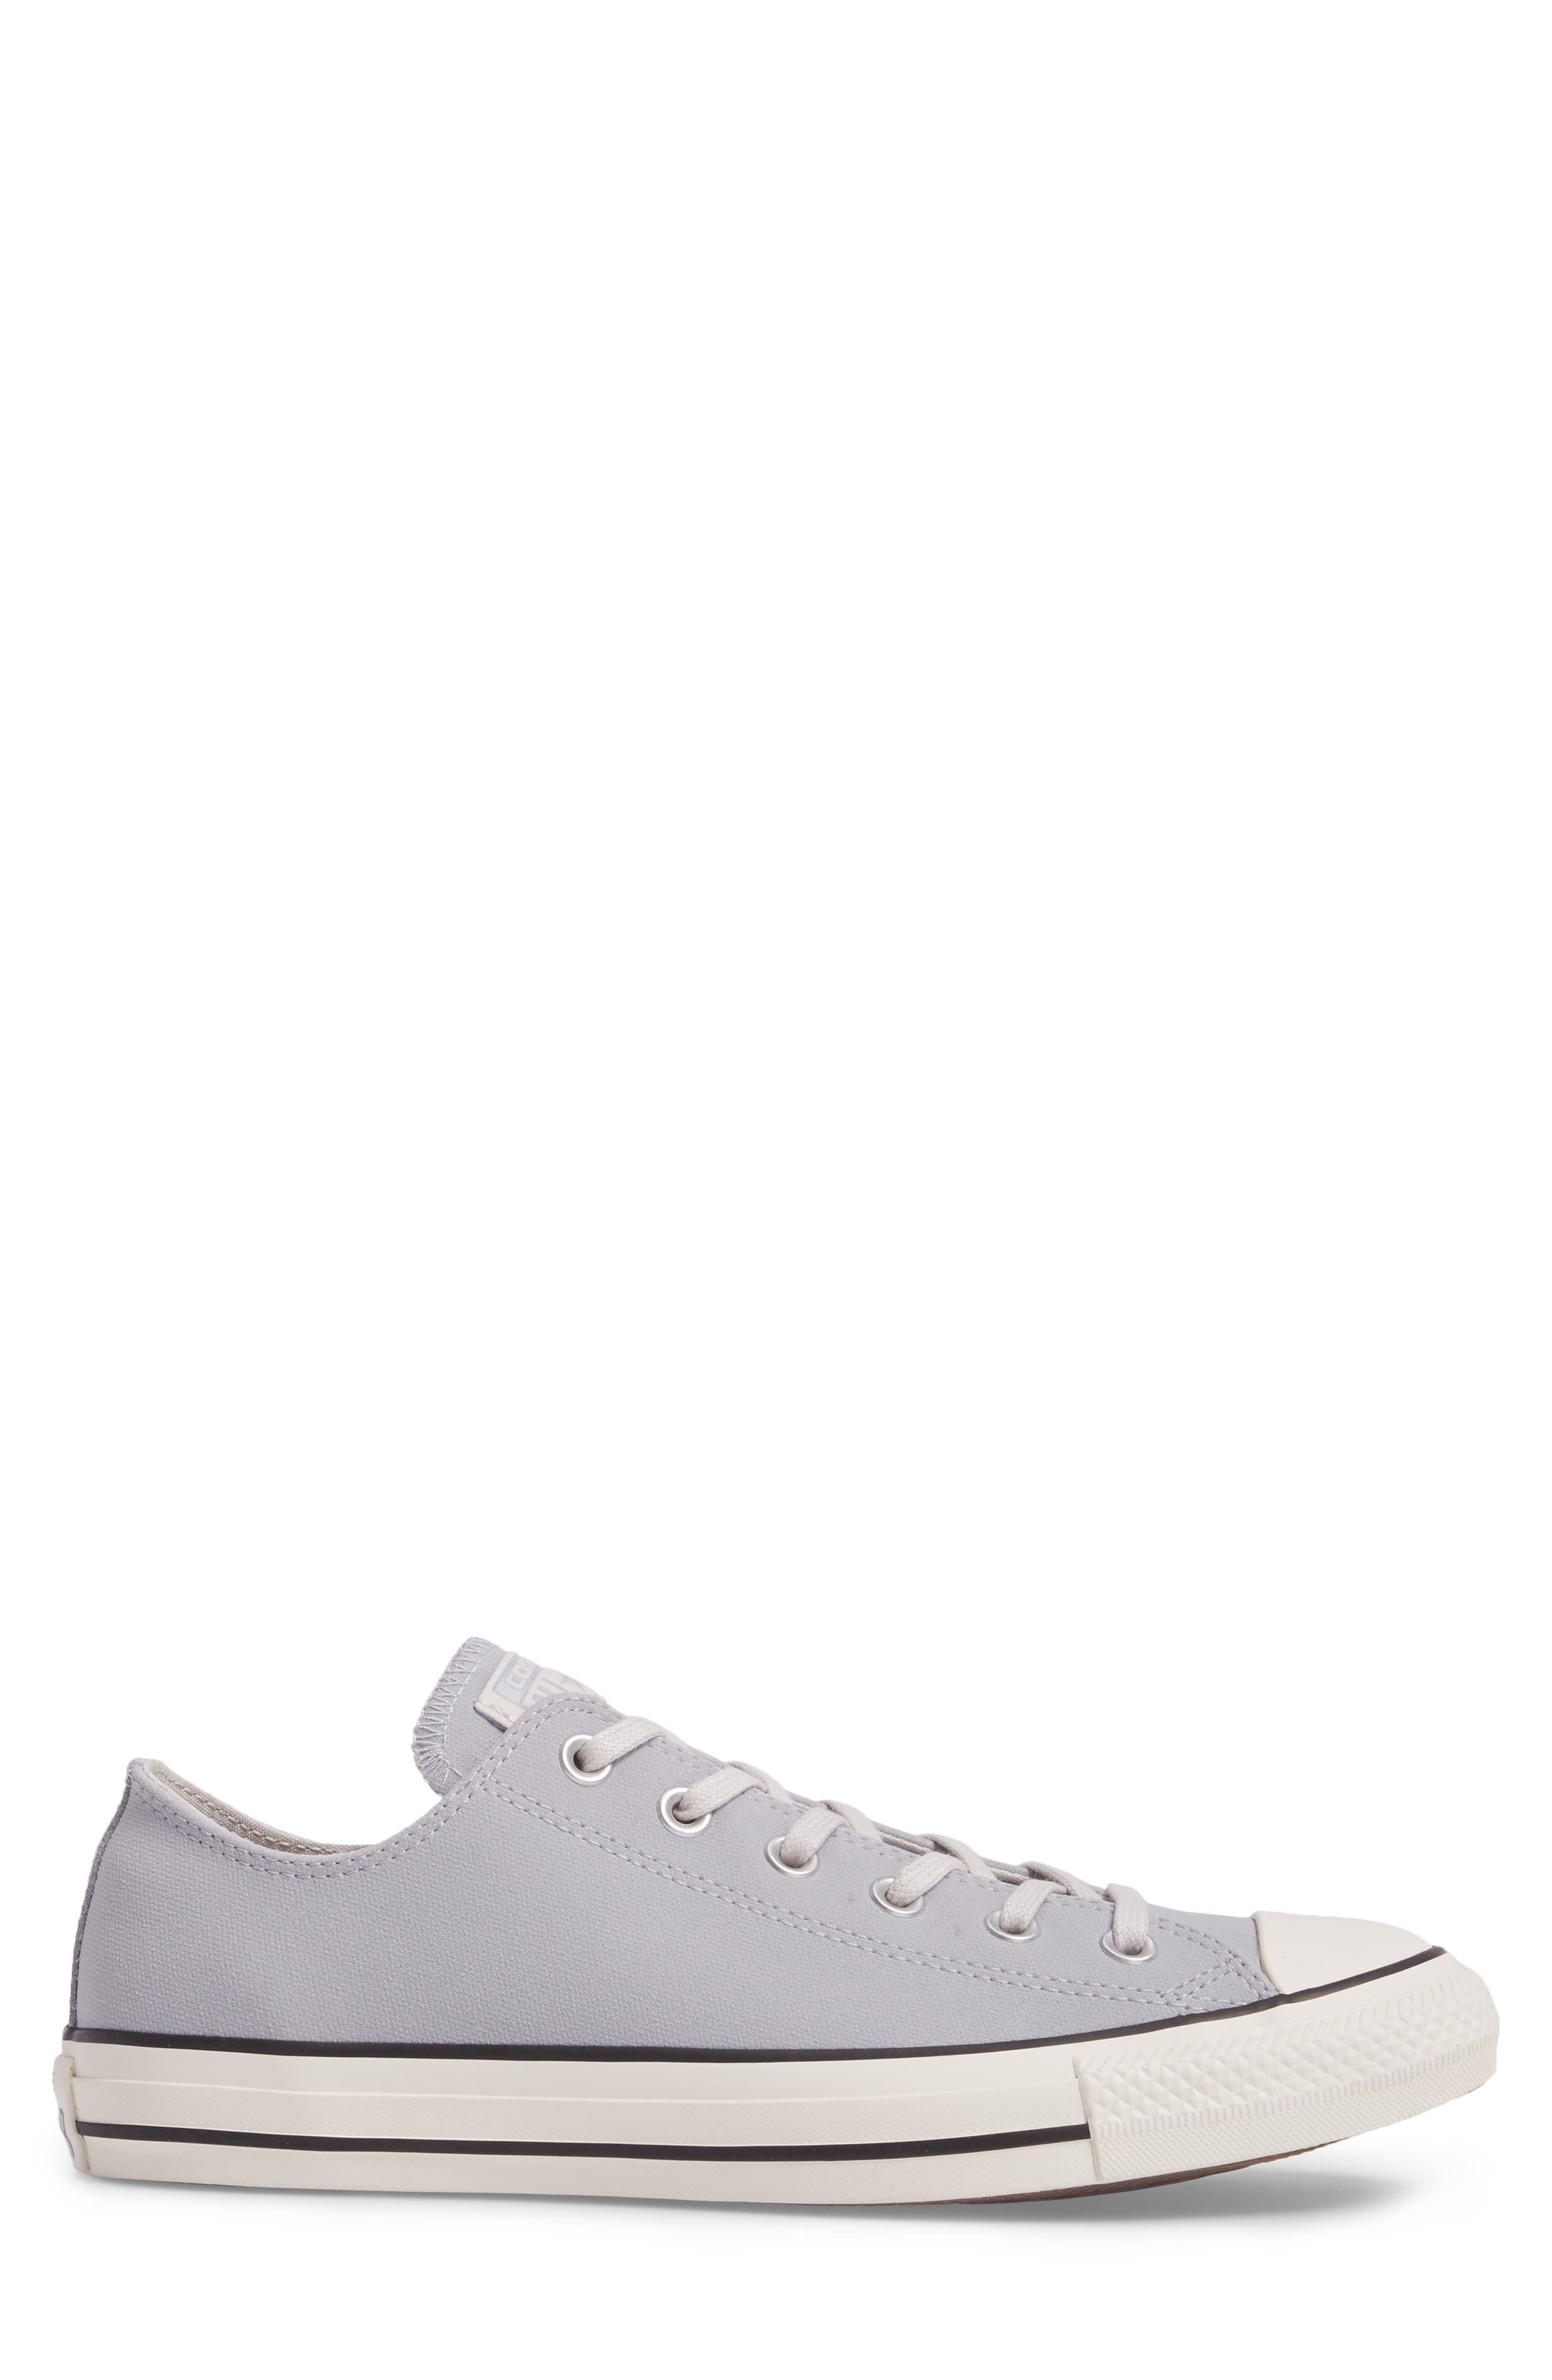 Chuck Taylor<sup>®</sup> All Star<sup>®</sup> Lo Sneaker,                             Alternate thumbnail 3, color,                             Wolf Grey